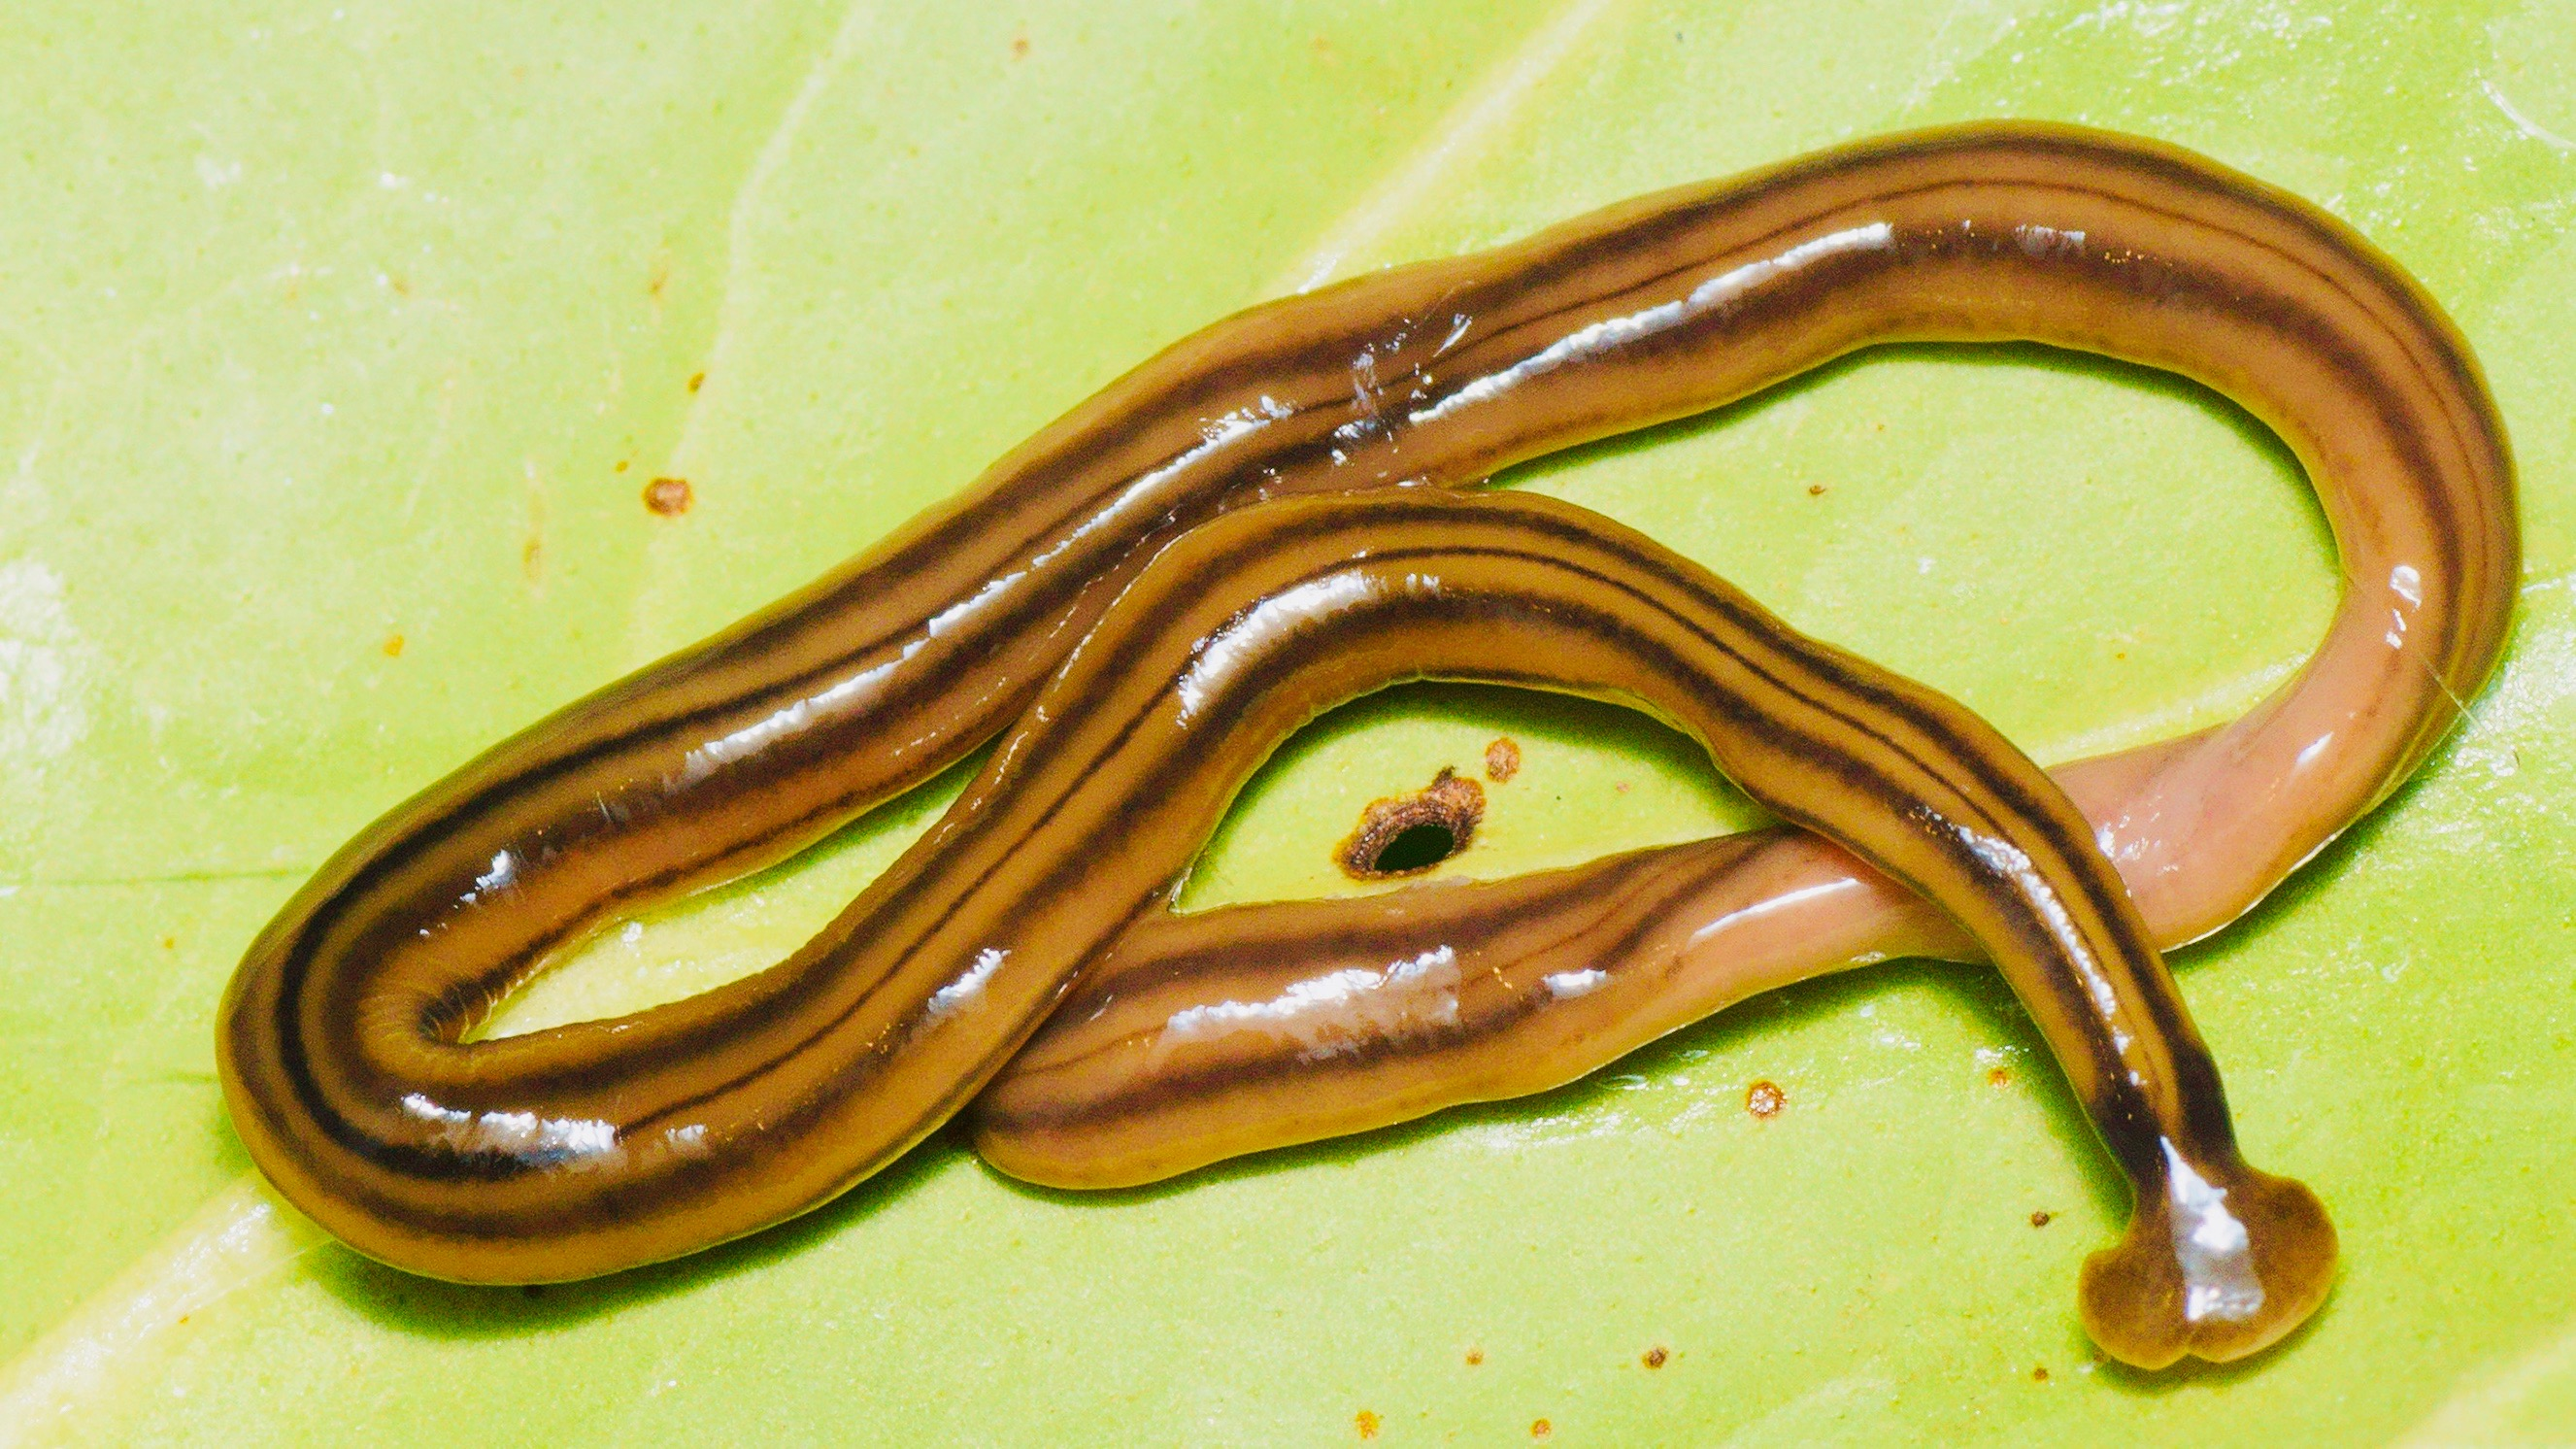 Entomologists missed this giant worm invading France for 20 years.